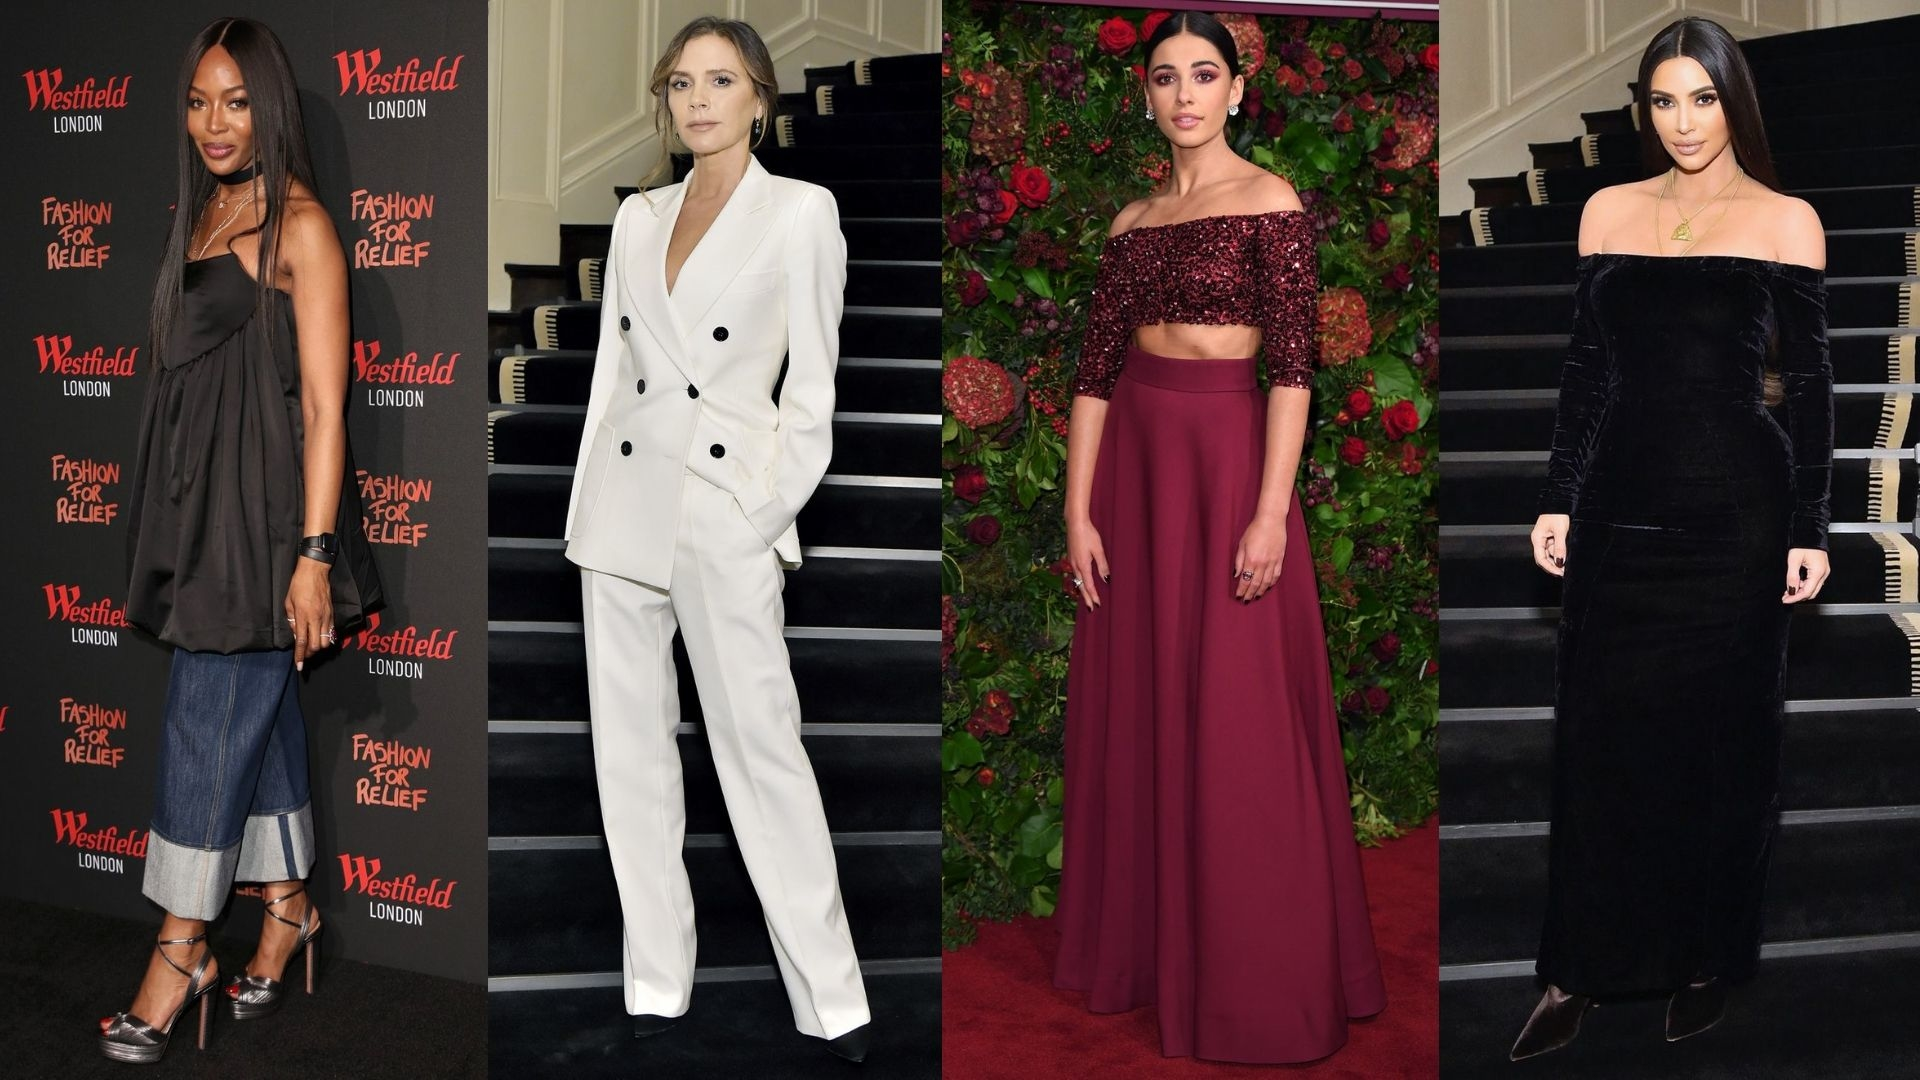 The Best Dressed Celebrities Of The Week: 28 November